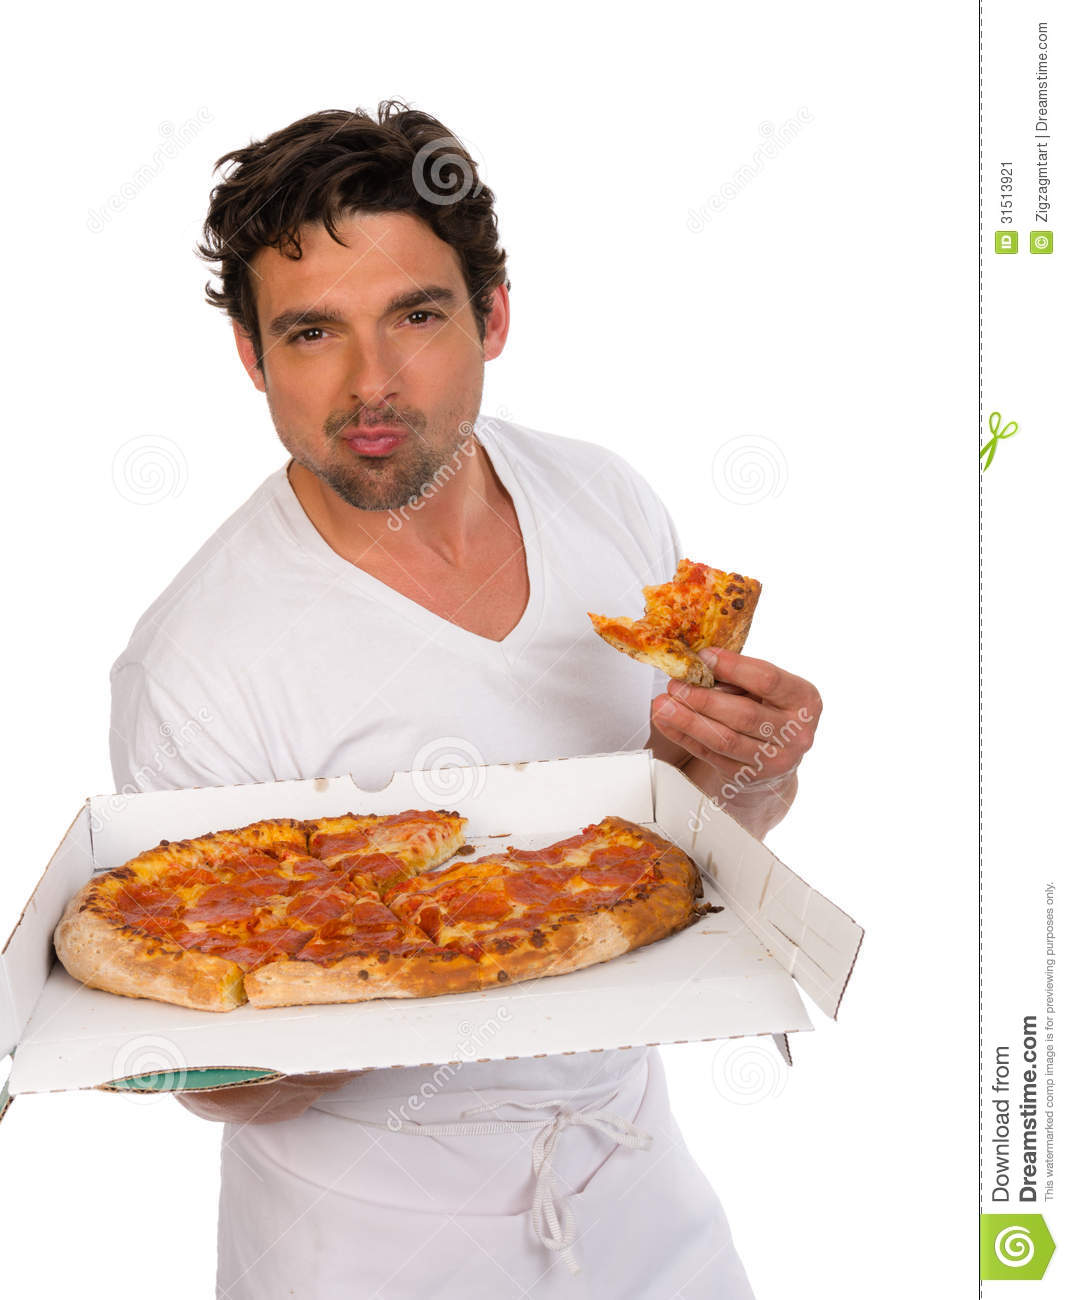 pizza delivery man with a pizza stock image image 31513921. Black Bedroom Furniture Sets. Home Design Ideas